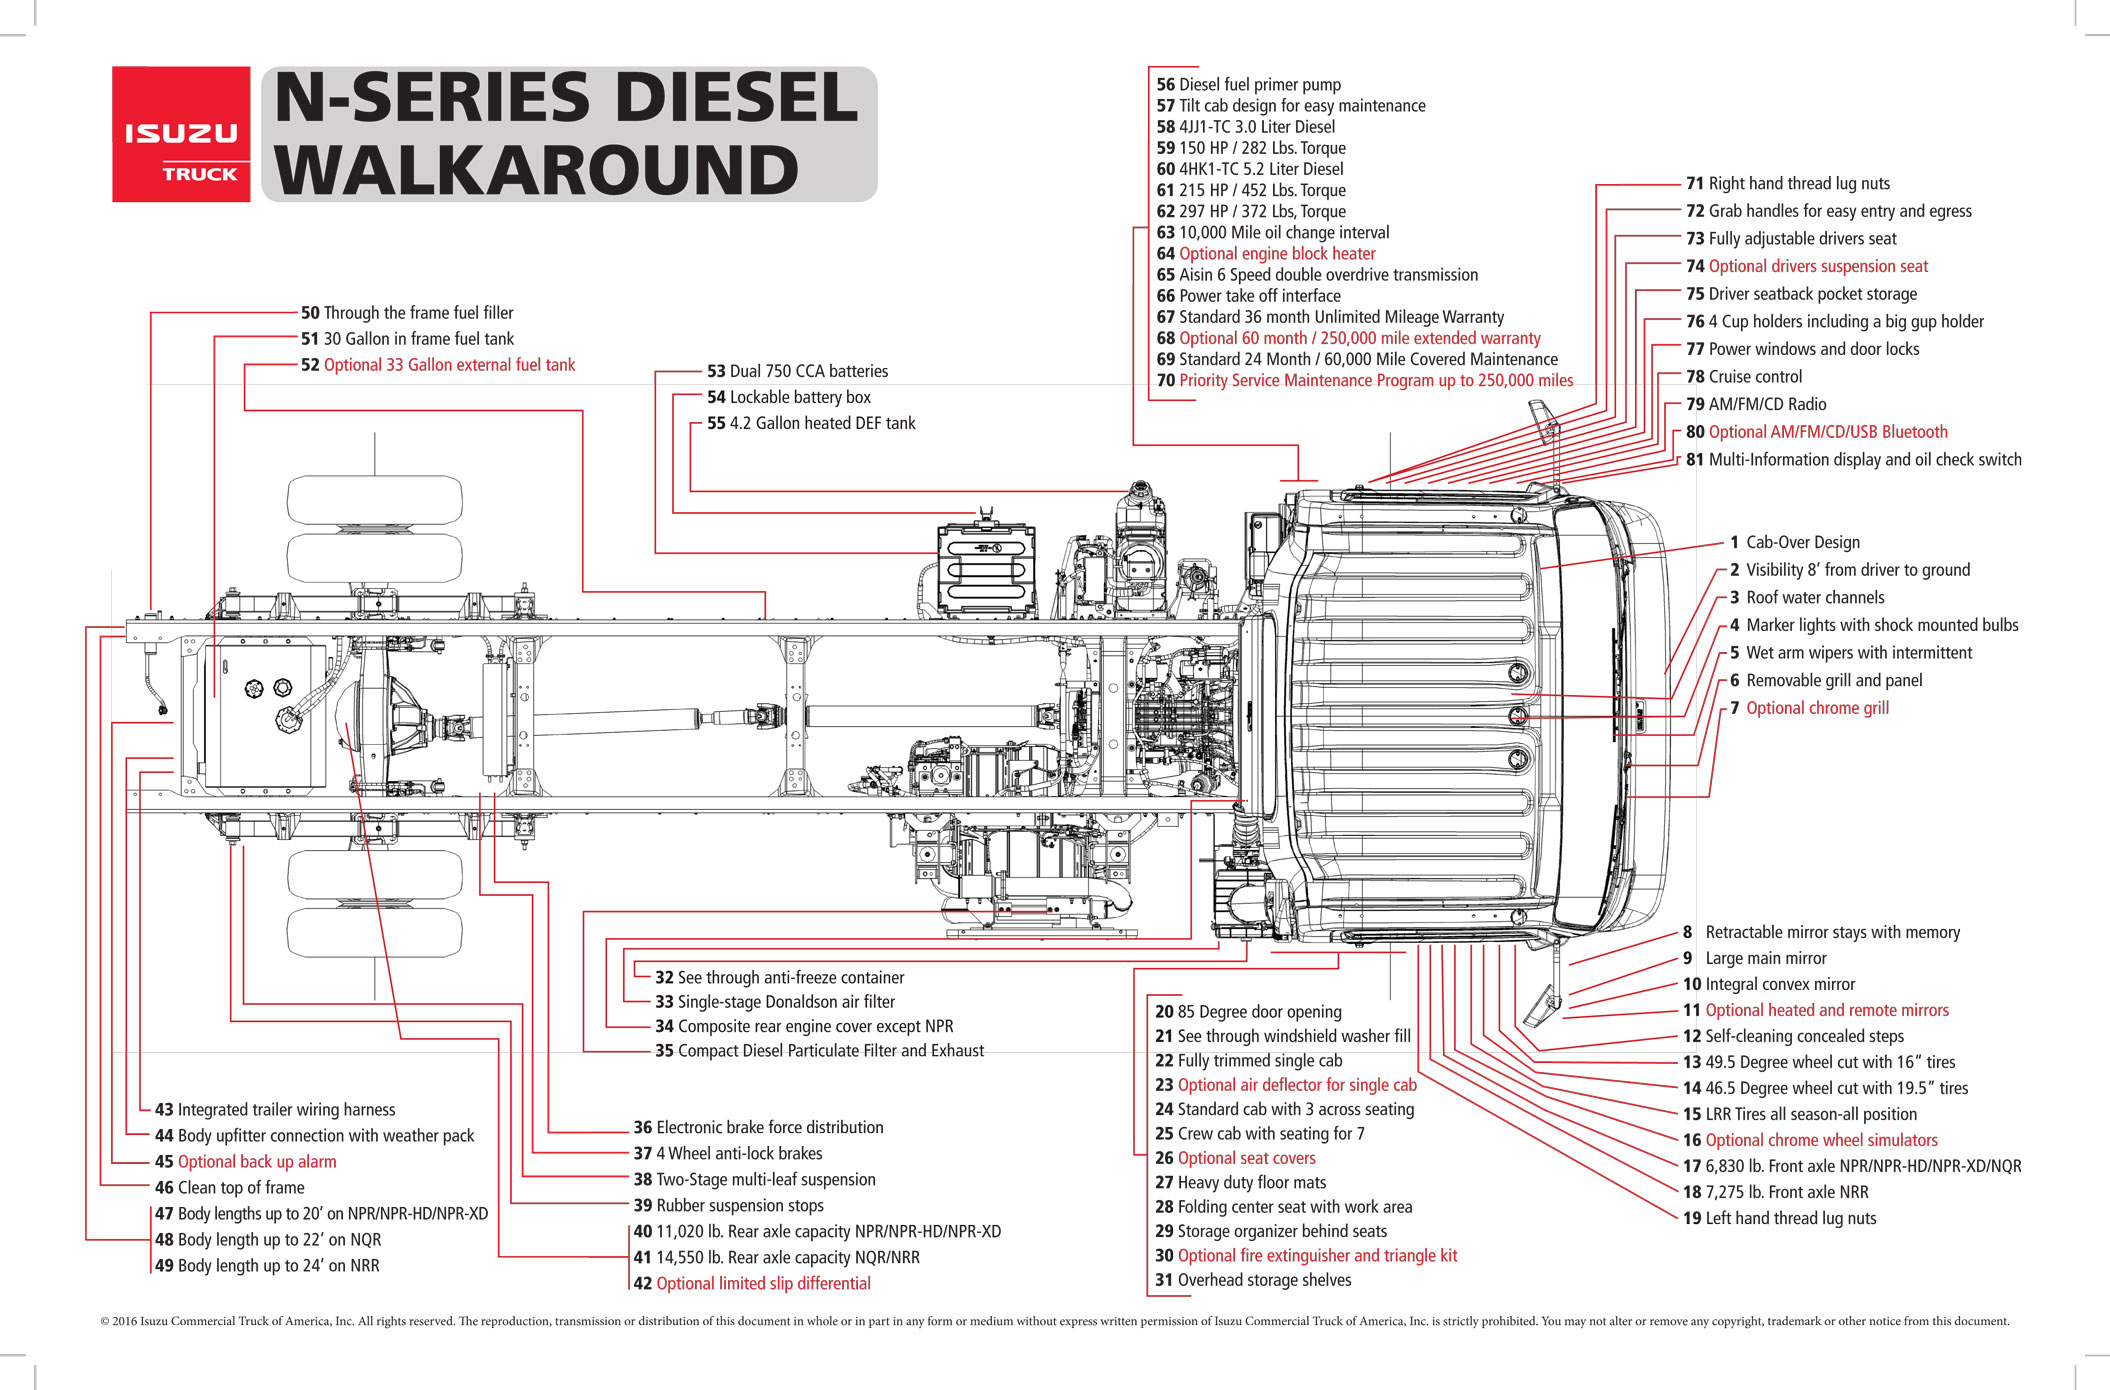 isuzu n-series gas and diesel walkaround specials